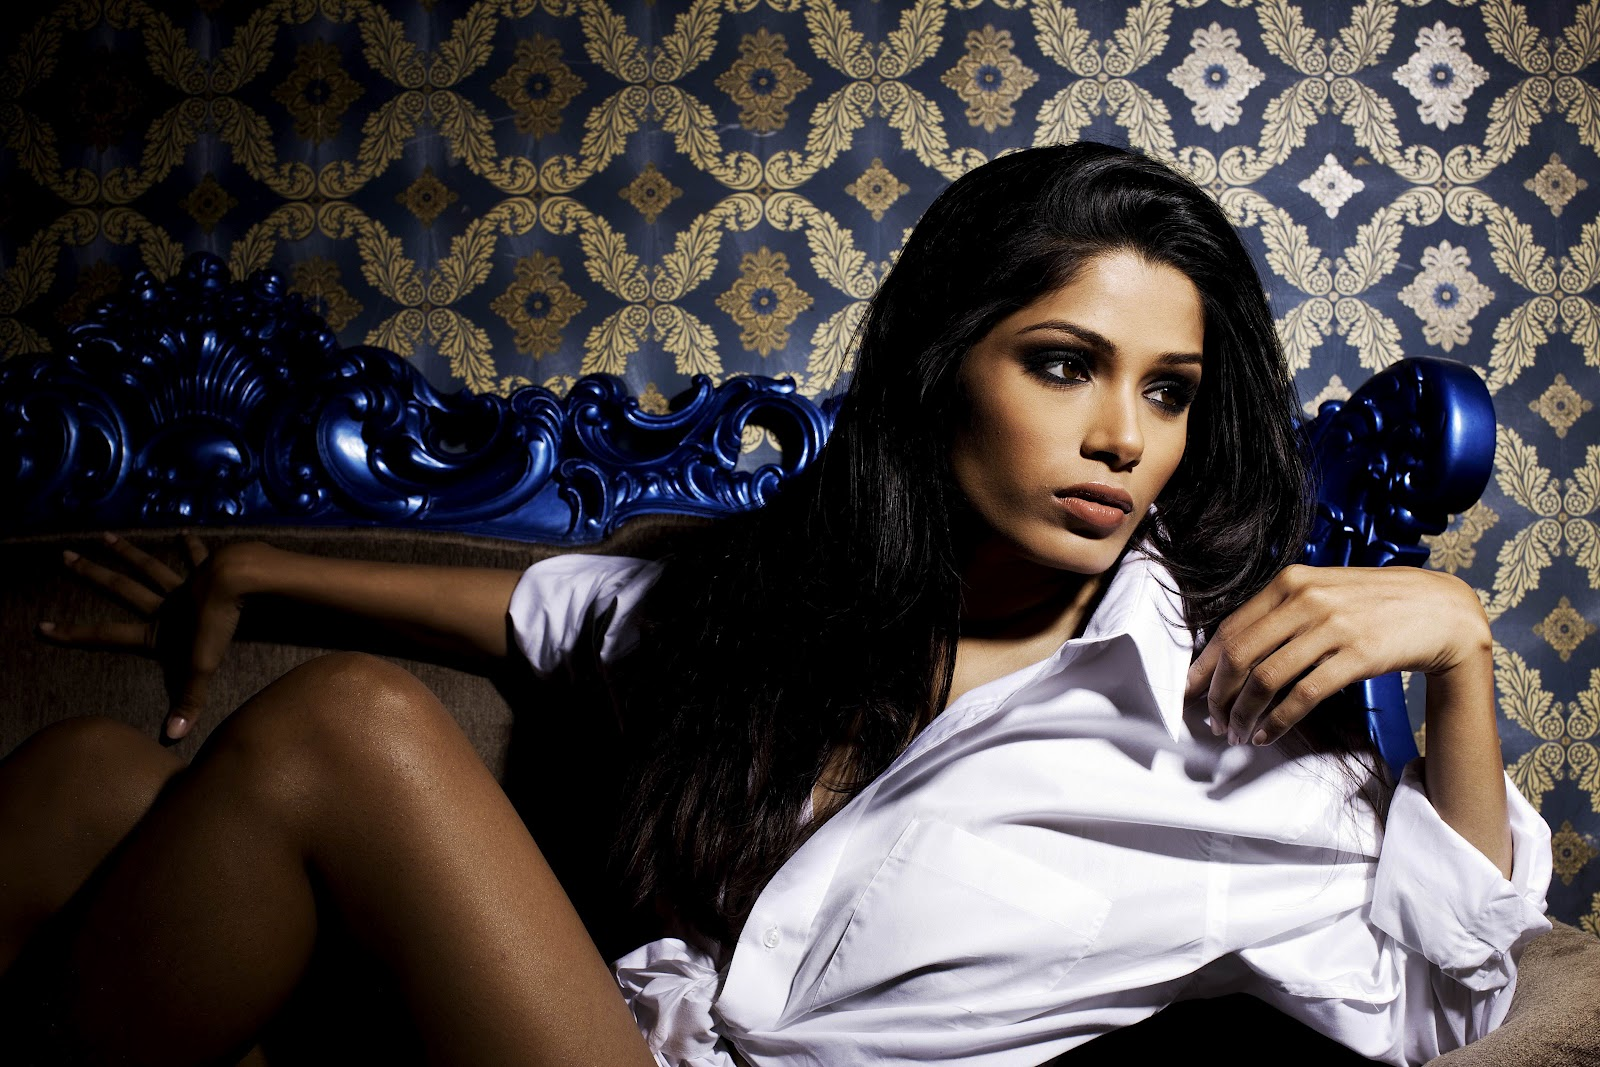 http://4.bp.blogspot.com/-565zP1YjRyw/T-l_E_80muI/AAAAAAAAIqU/nCb5TZ7U4hM/s1600/Freida-Pinto-Hot-Photo-Shoot-sd234234234.jpg